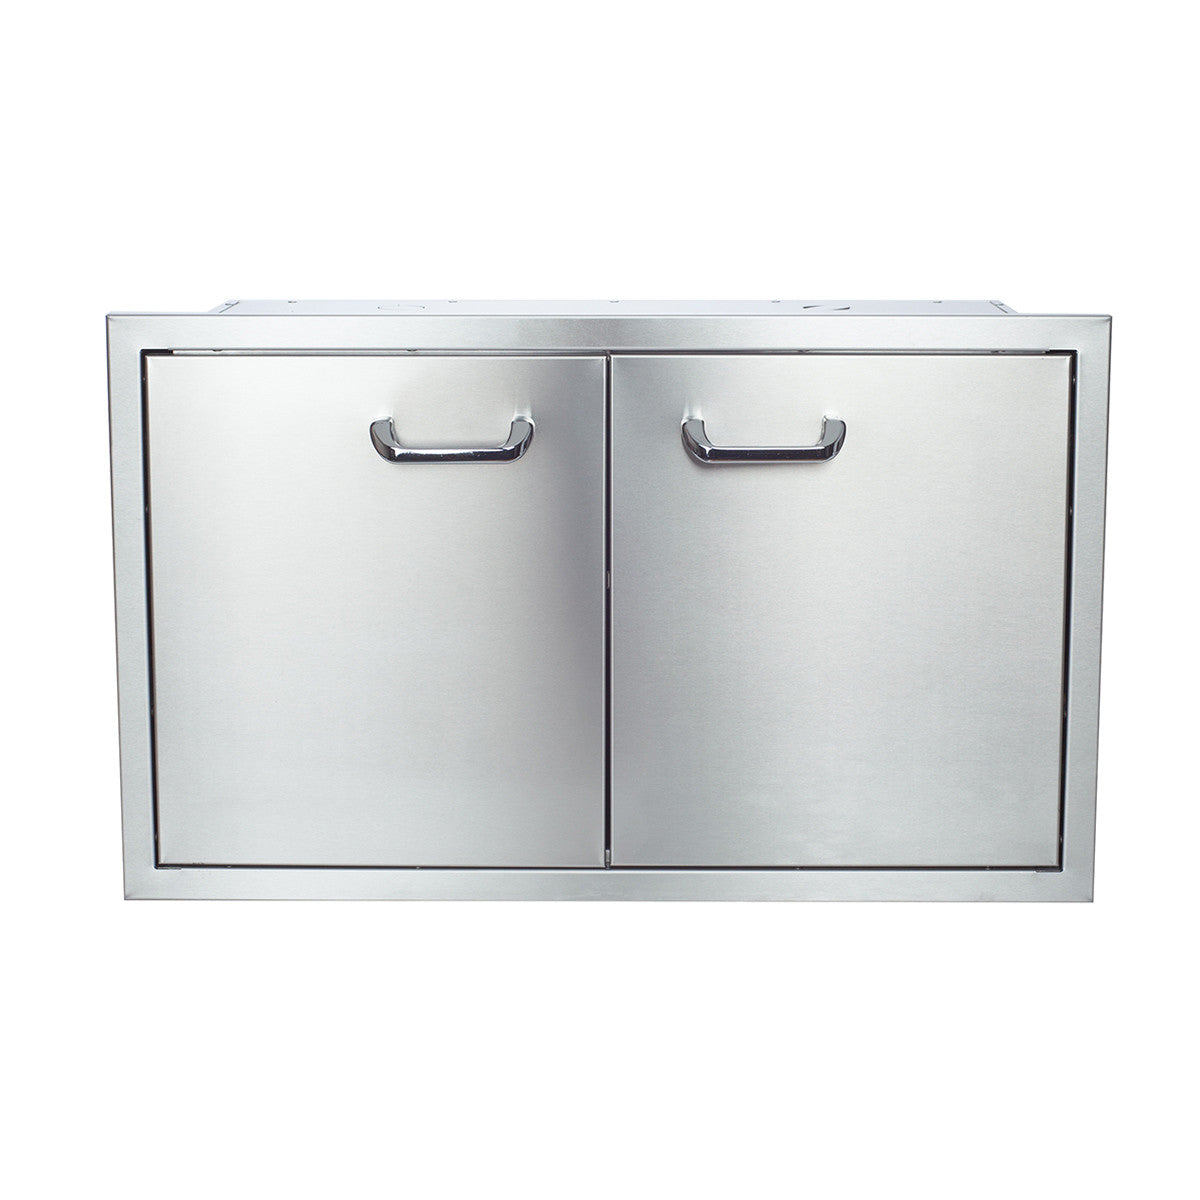 shelf purpose free in multi p plastic gray cabinet cabinets w standing hdx